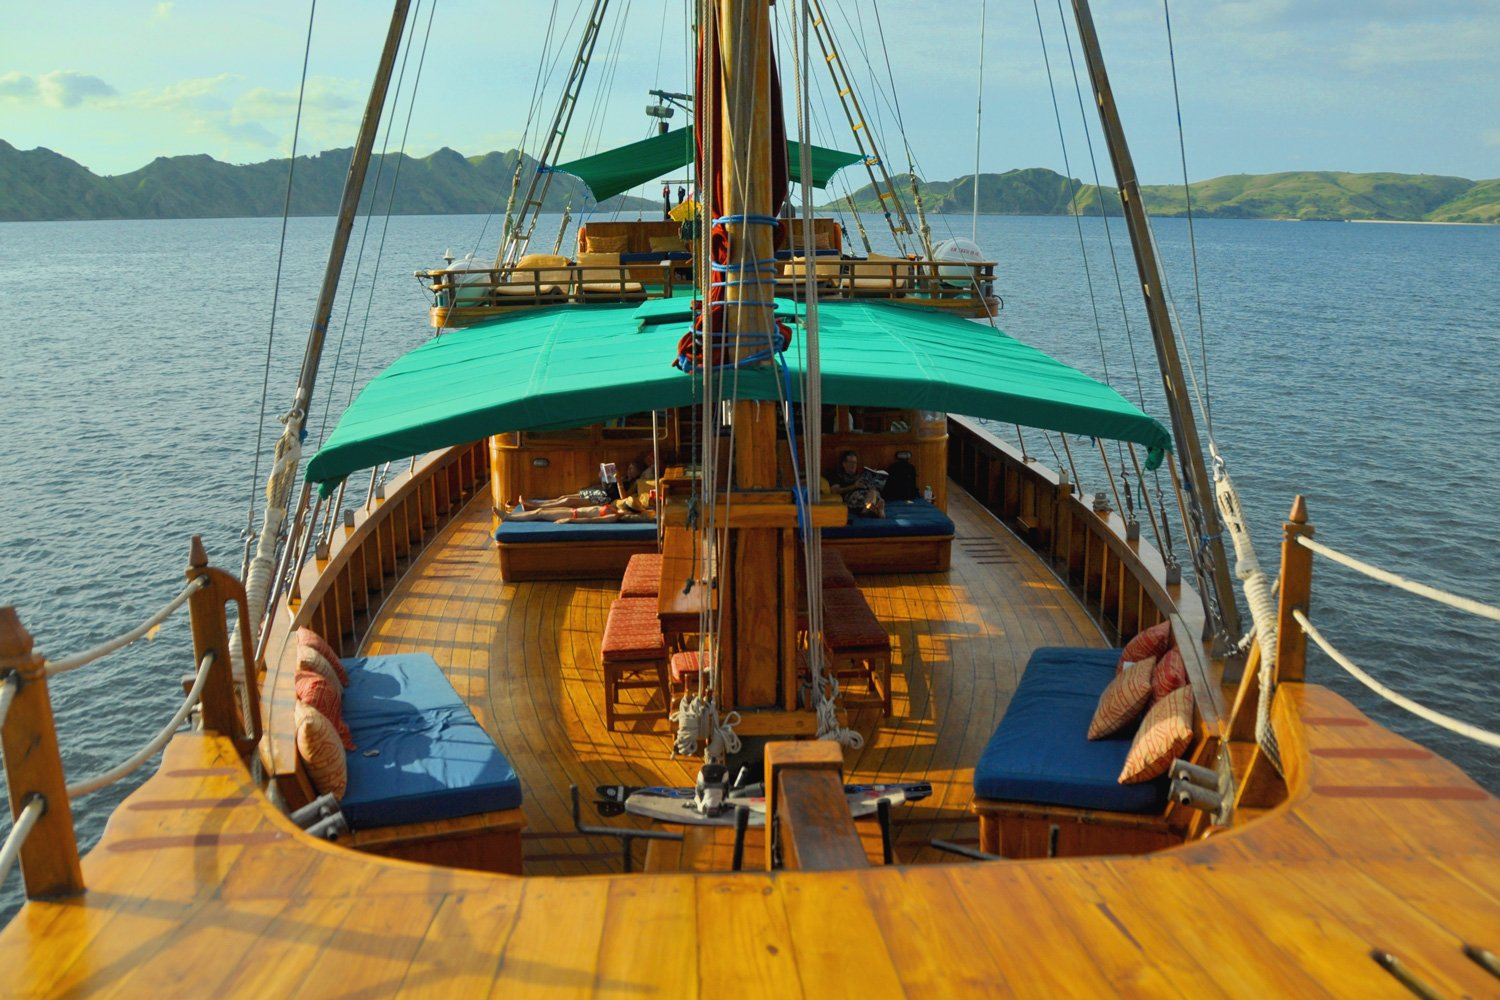 Relax on a daybed on the main deck as Tiger Blue sails the seas of Eastern Indonesia